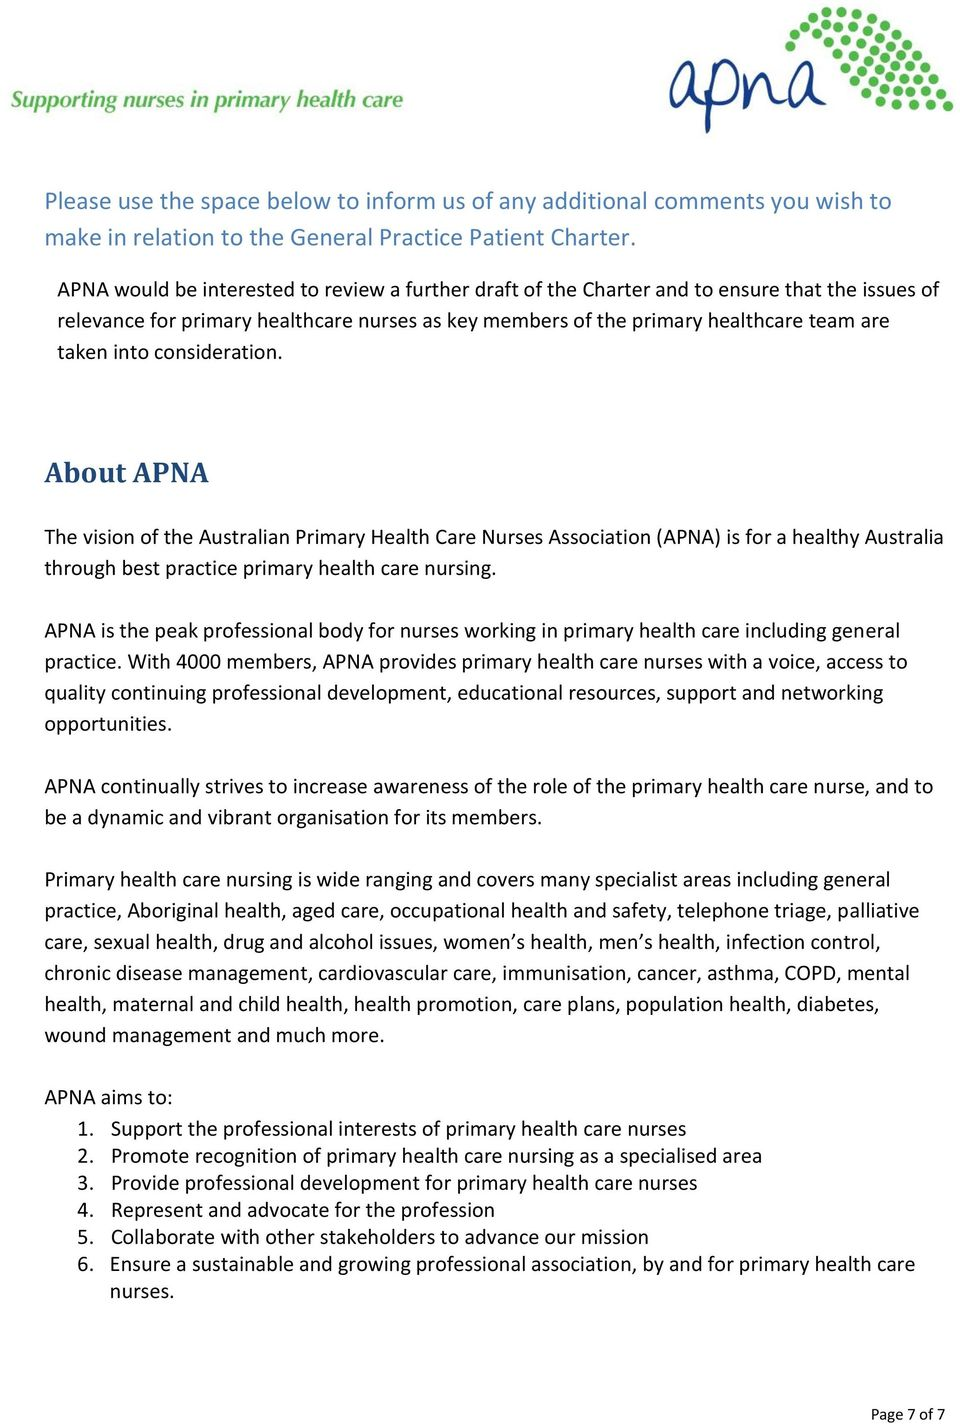 consideration. About APNA The vision of the Australian Primary Health Care Nurses Association (APNA) is for a healthy Australia through best practice primary health care nursing.